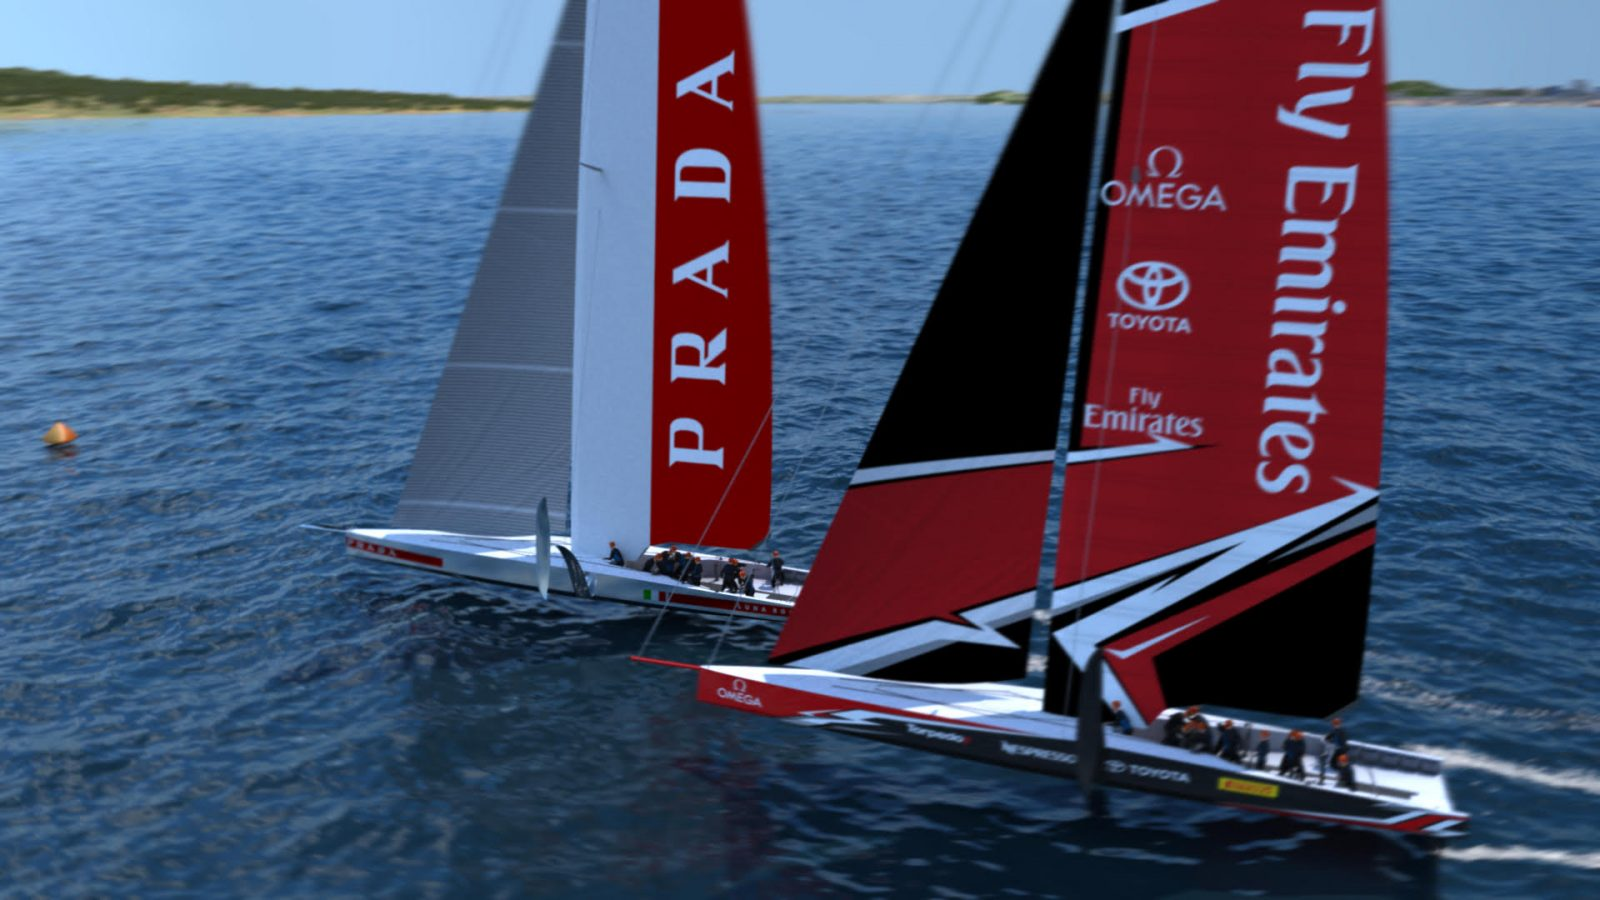 soft-wing-concept-for-AC75-foiling-boat-in-Americas-Cup-2021